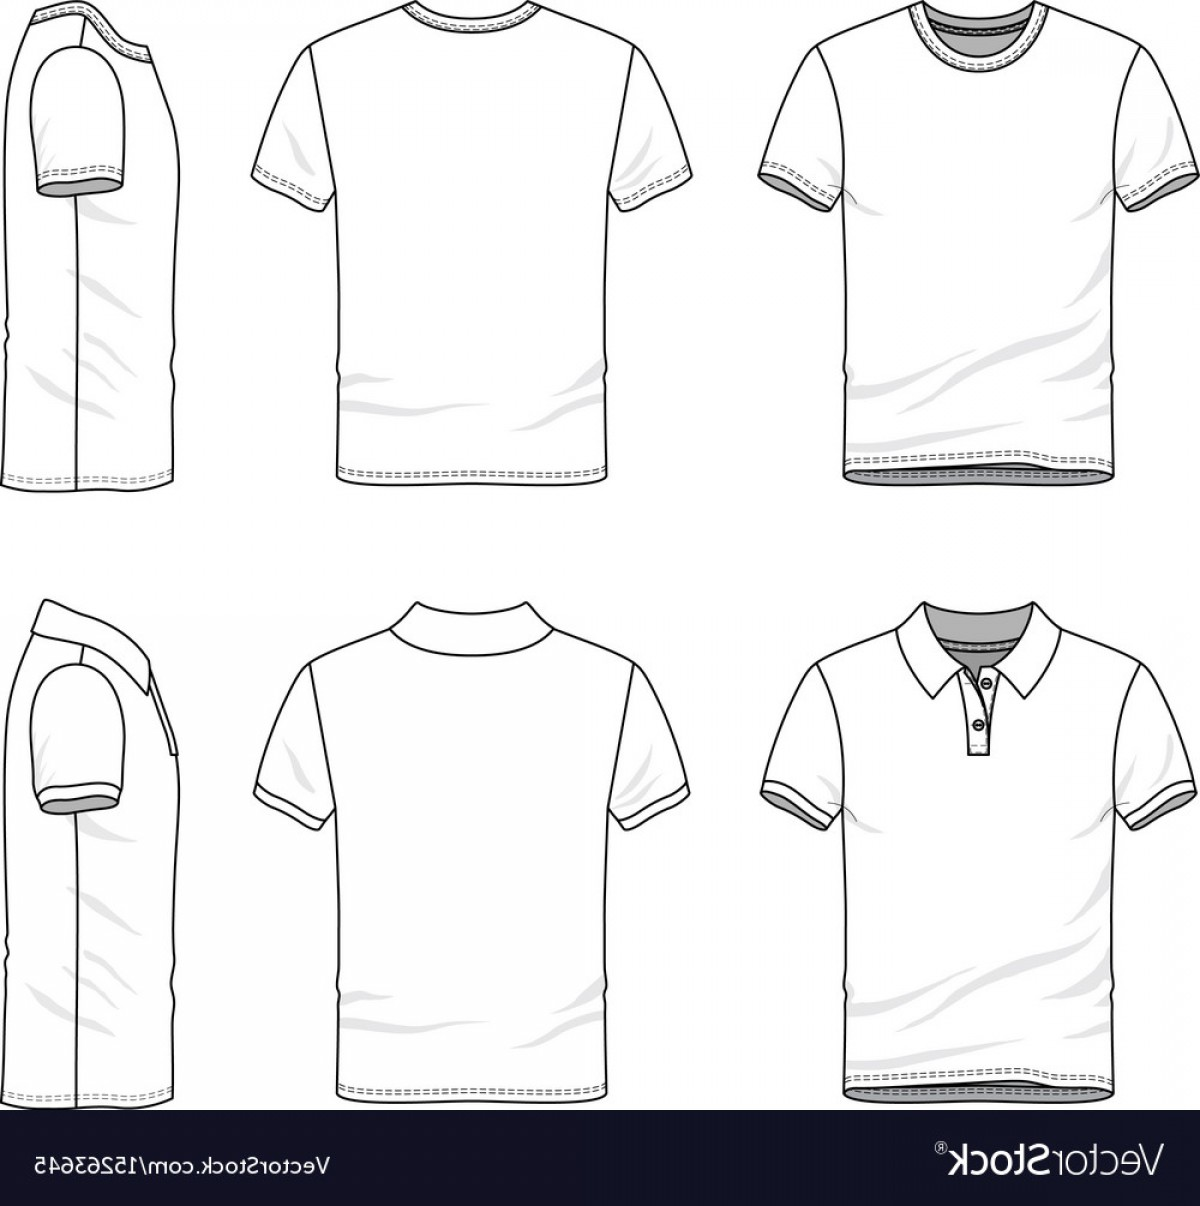 Sweatshirt Vector Template: Templates Of T Shirt And Polo Shirt Vector